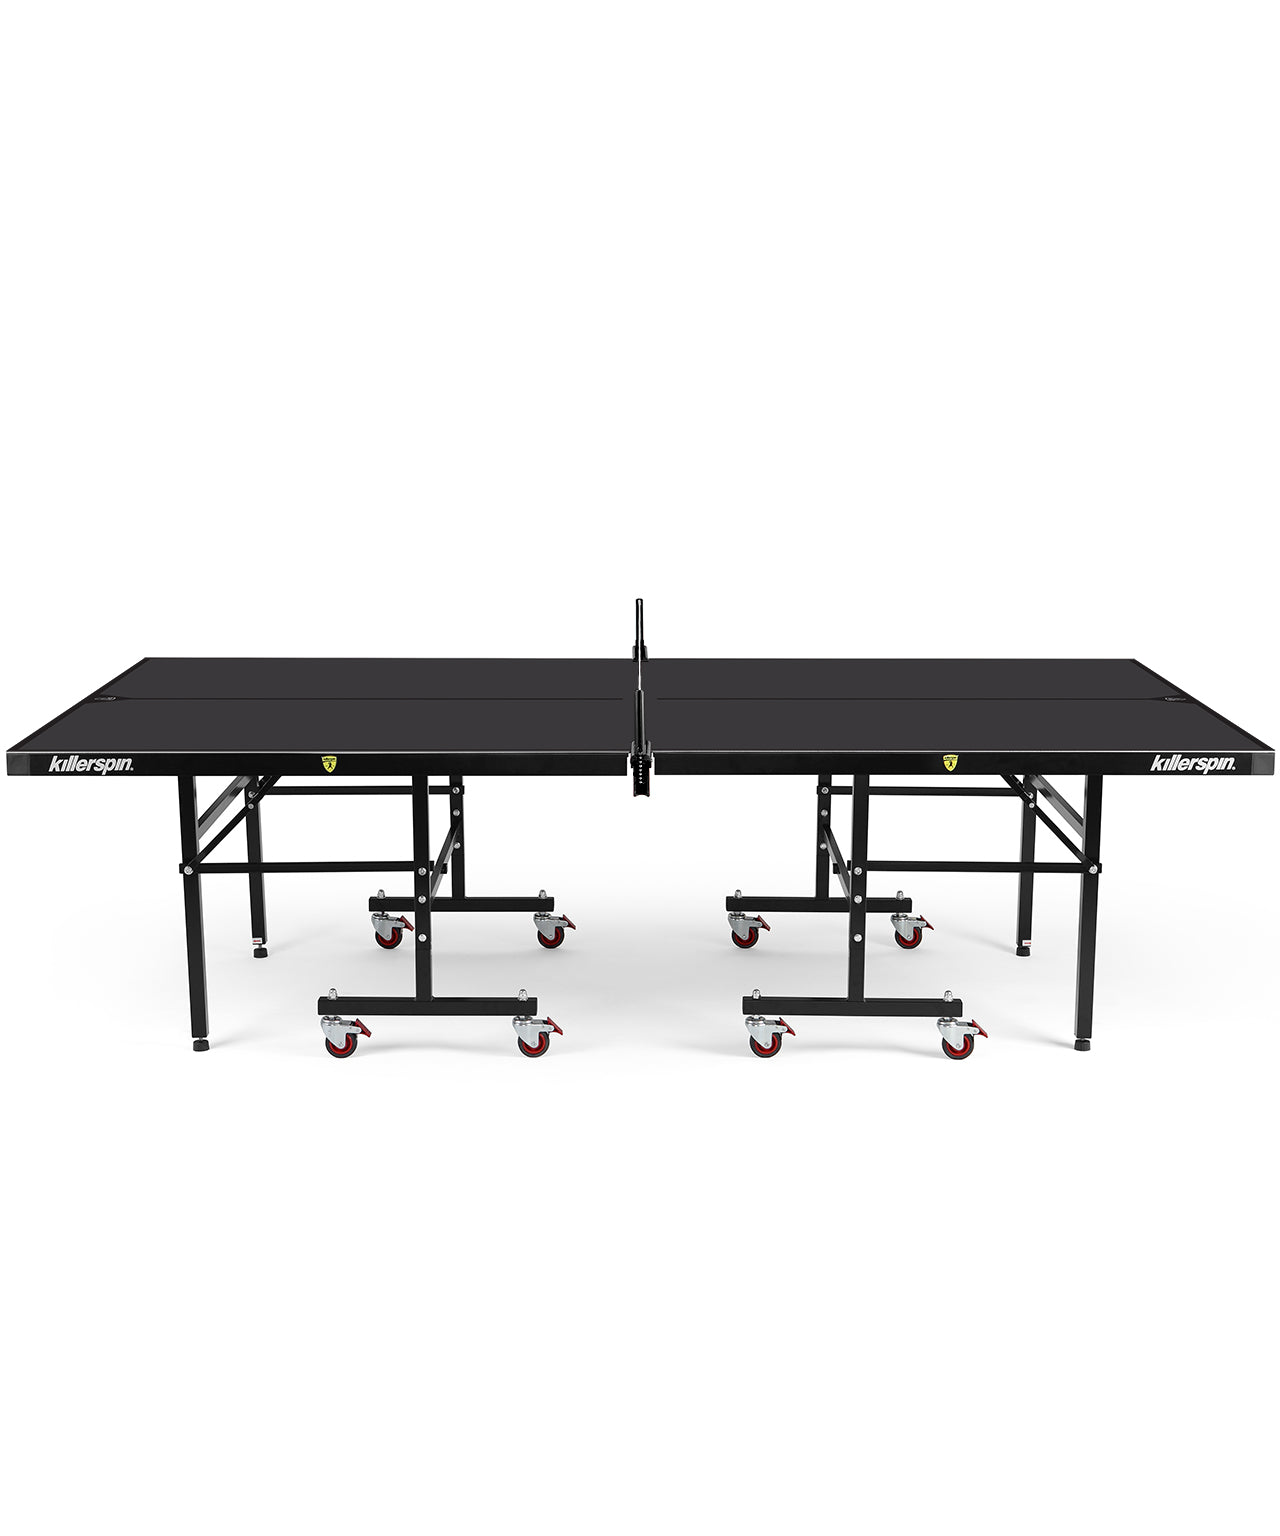 Killerspin Outdoor Table Tennis Table MyT10 BlackStorm - Side